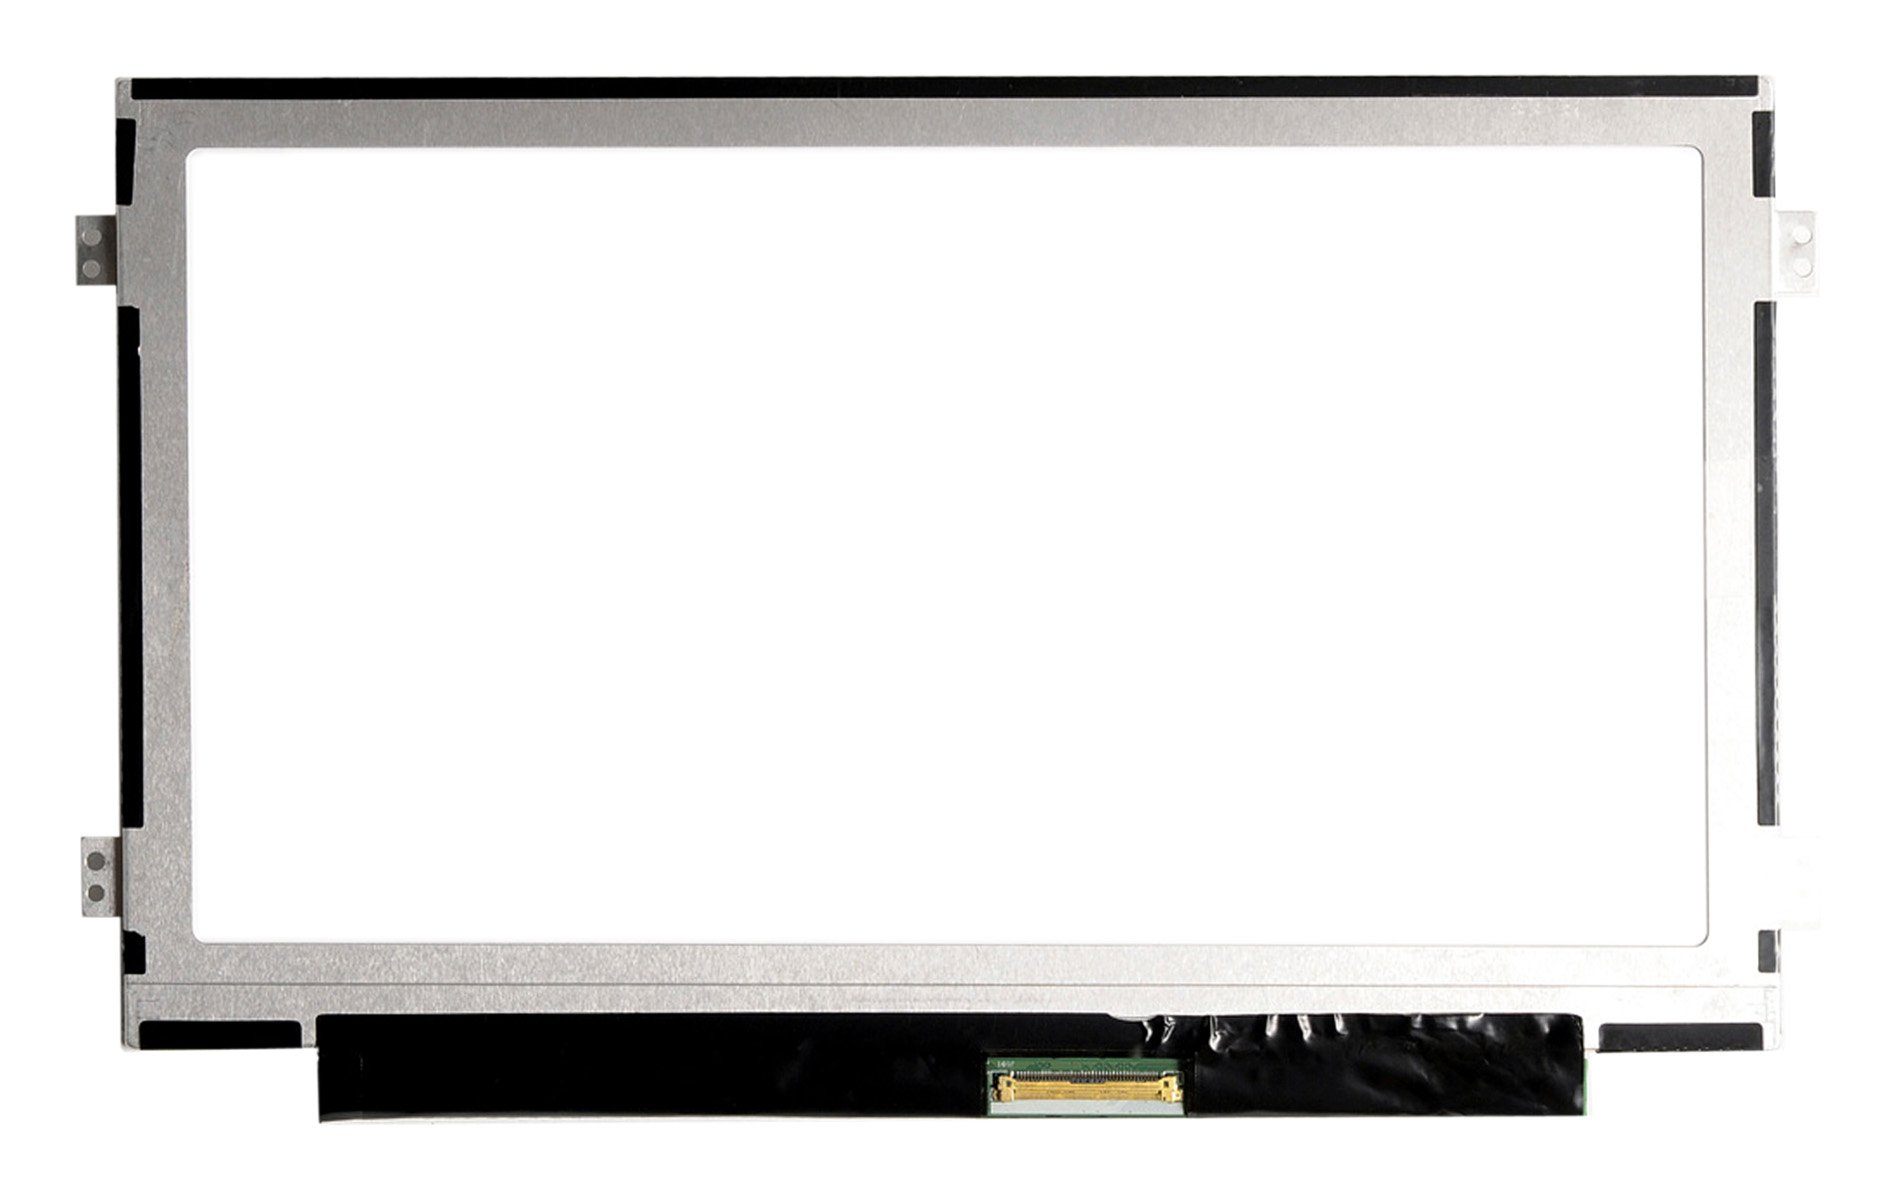 """Acer Aspire One Nav50 Replacement LAPTOP LCD Screen 10.1/"""" WSVGA LED DIODE"""